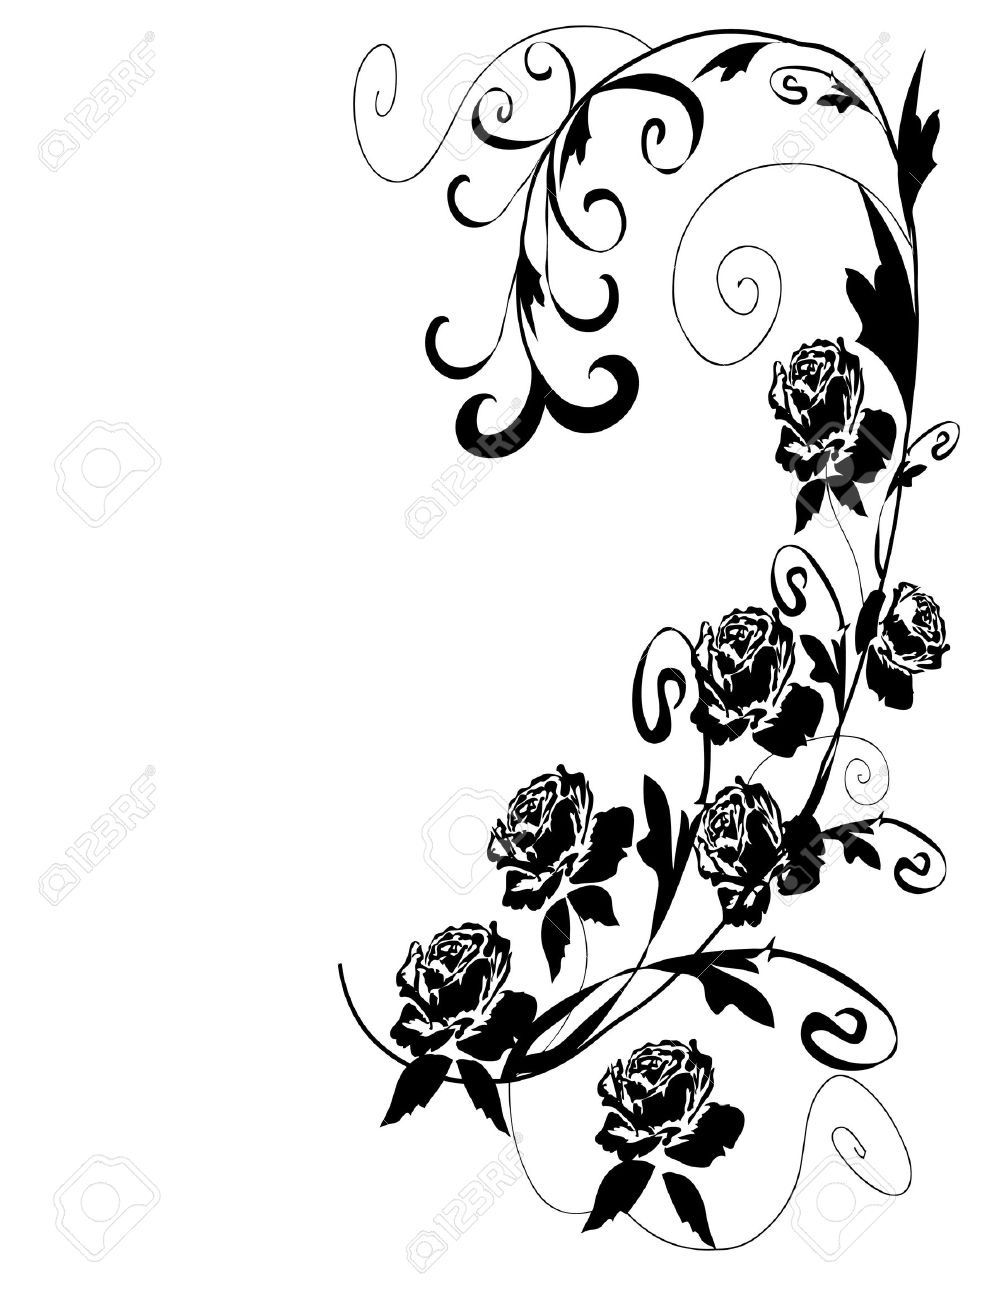 Black Roses Design Royalty Free Cliparts Vectors And Stock